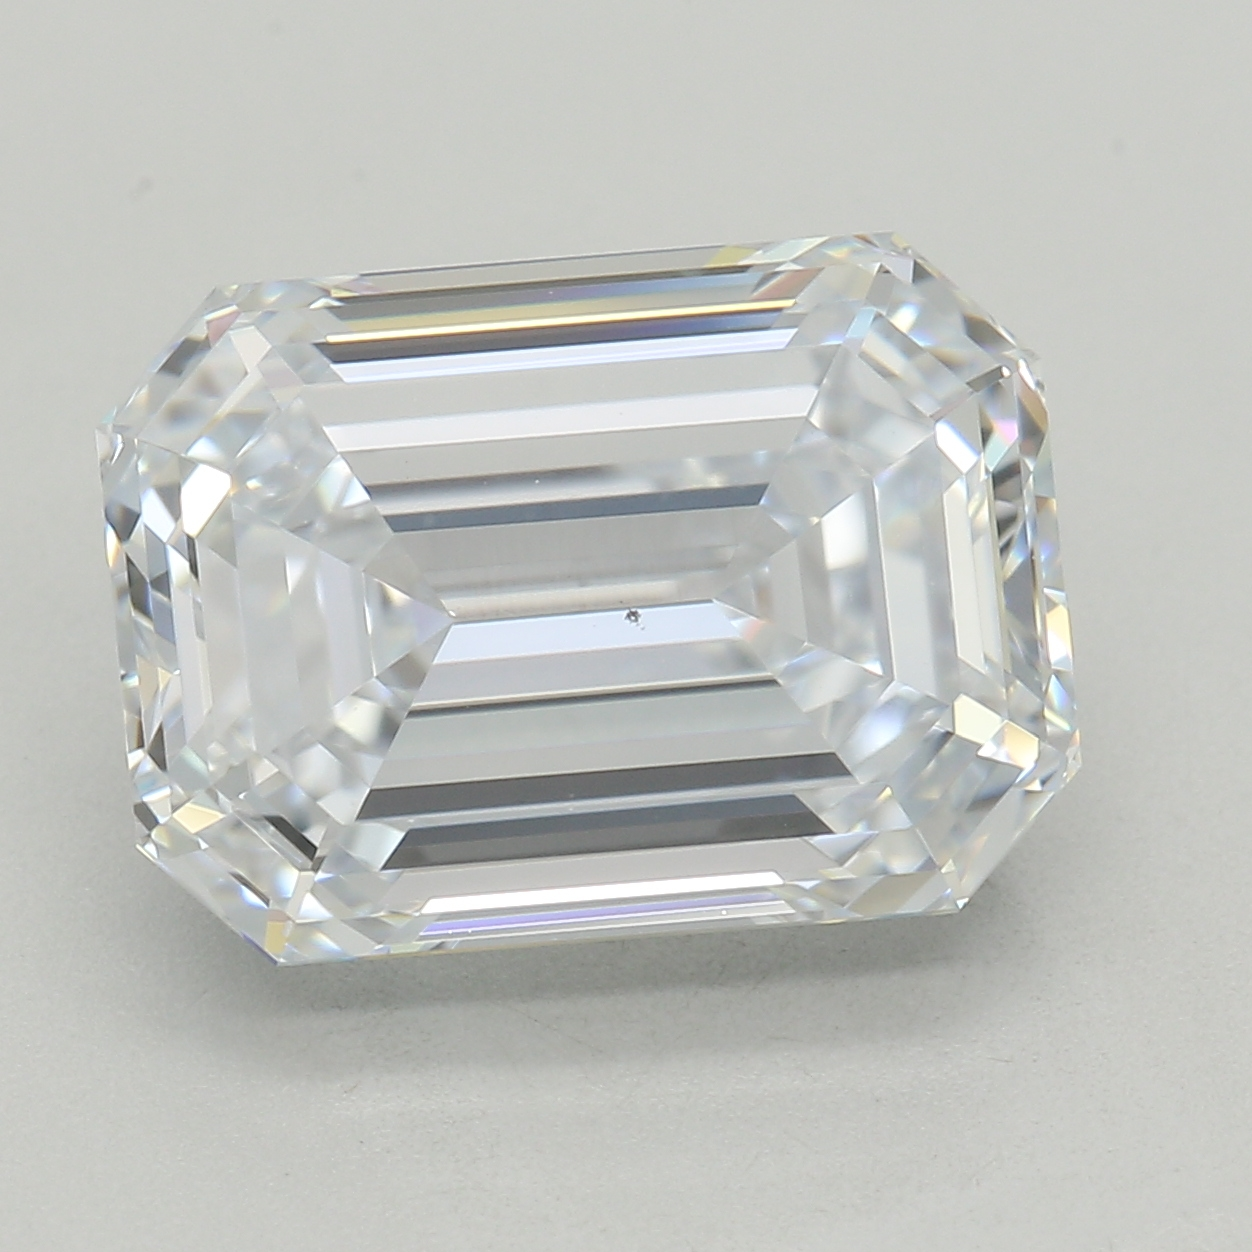 Emerald Cut 3.13 Carat G Color Vs2 Clarity Sku Lg44317333